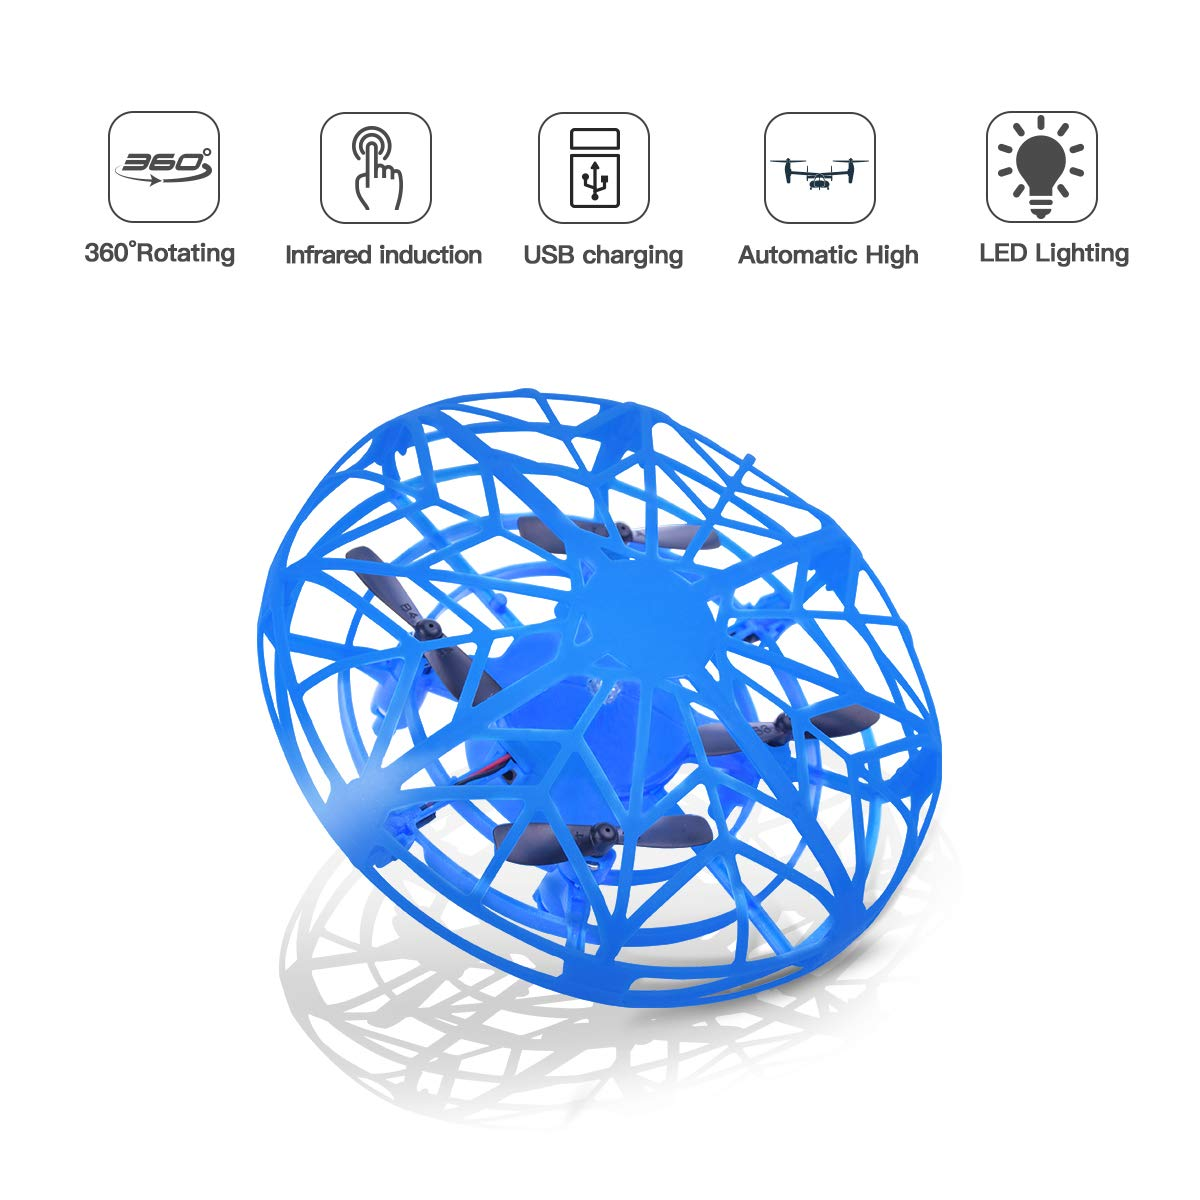 LEEHUR Mini Drones Flying Ball Toy for Kids UFO Quadcopter RC Helicopter Hand Controlled Obstacle Avoidance 360 Rotation Interactive Infrared Induction Flashing LED Lights by LEEHUR (Image #1)